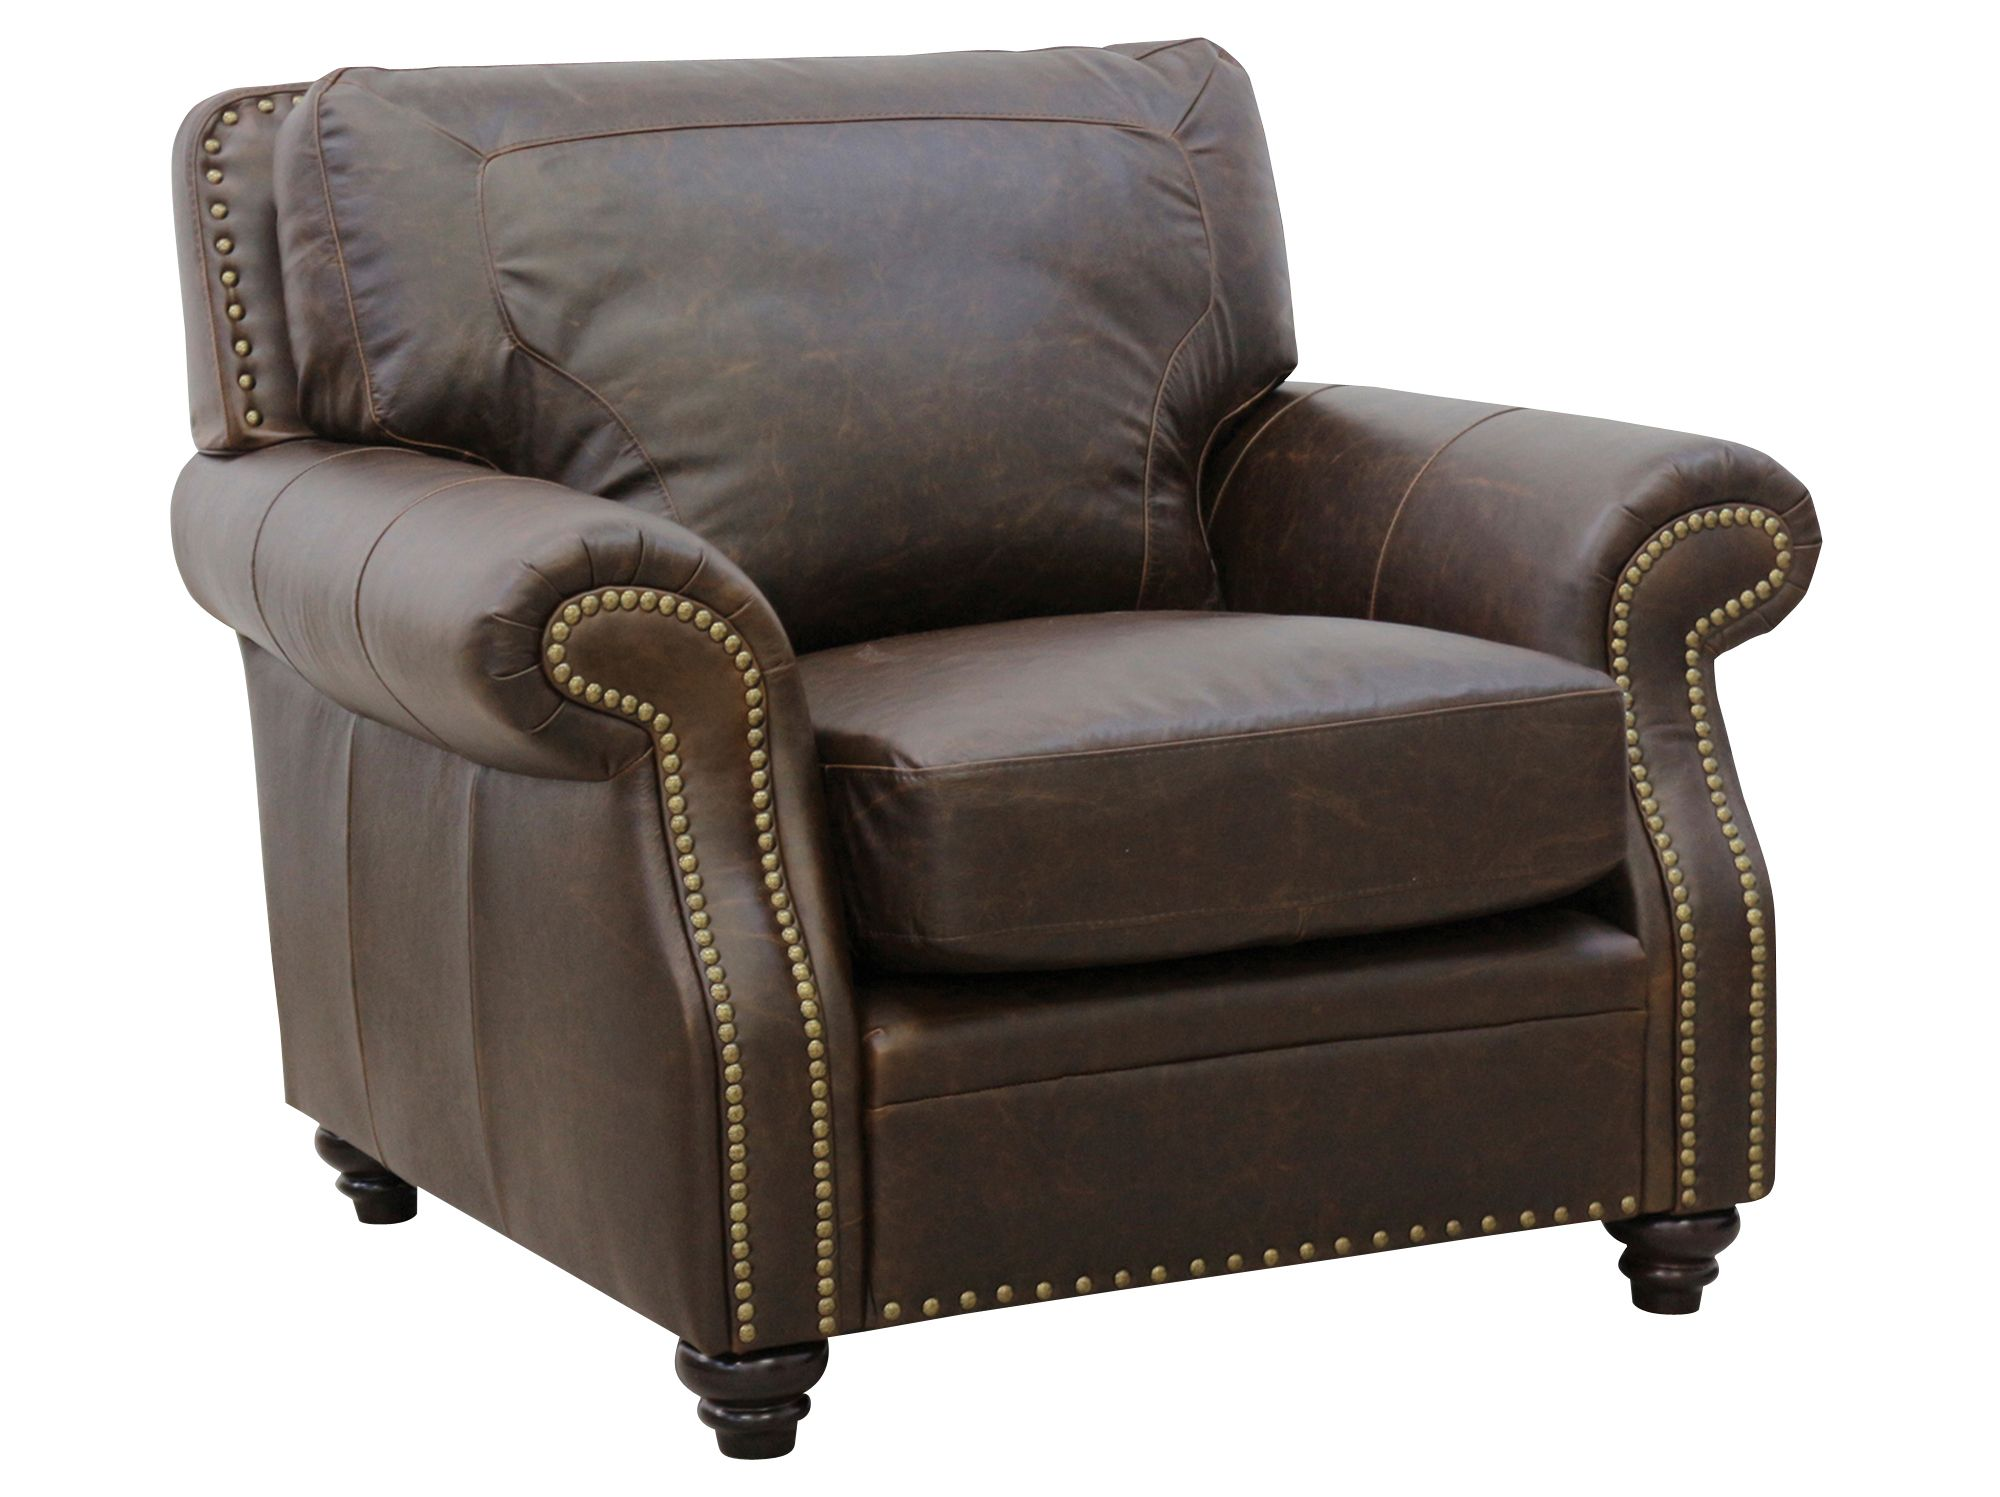 Chairs/Swivel Chairs/Recliners Leather chair, Chair and